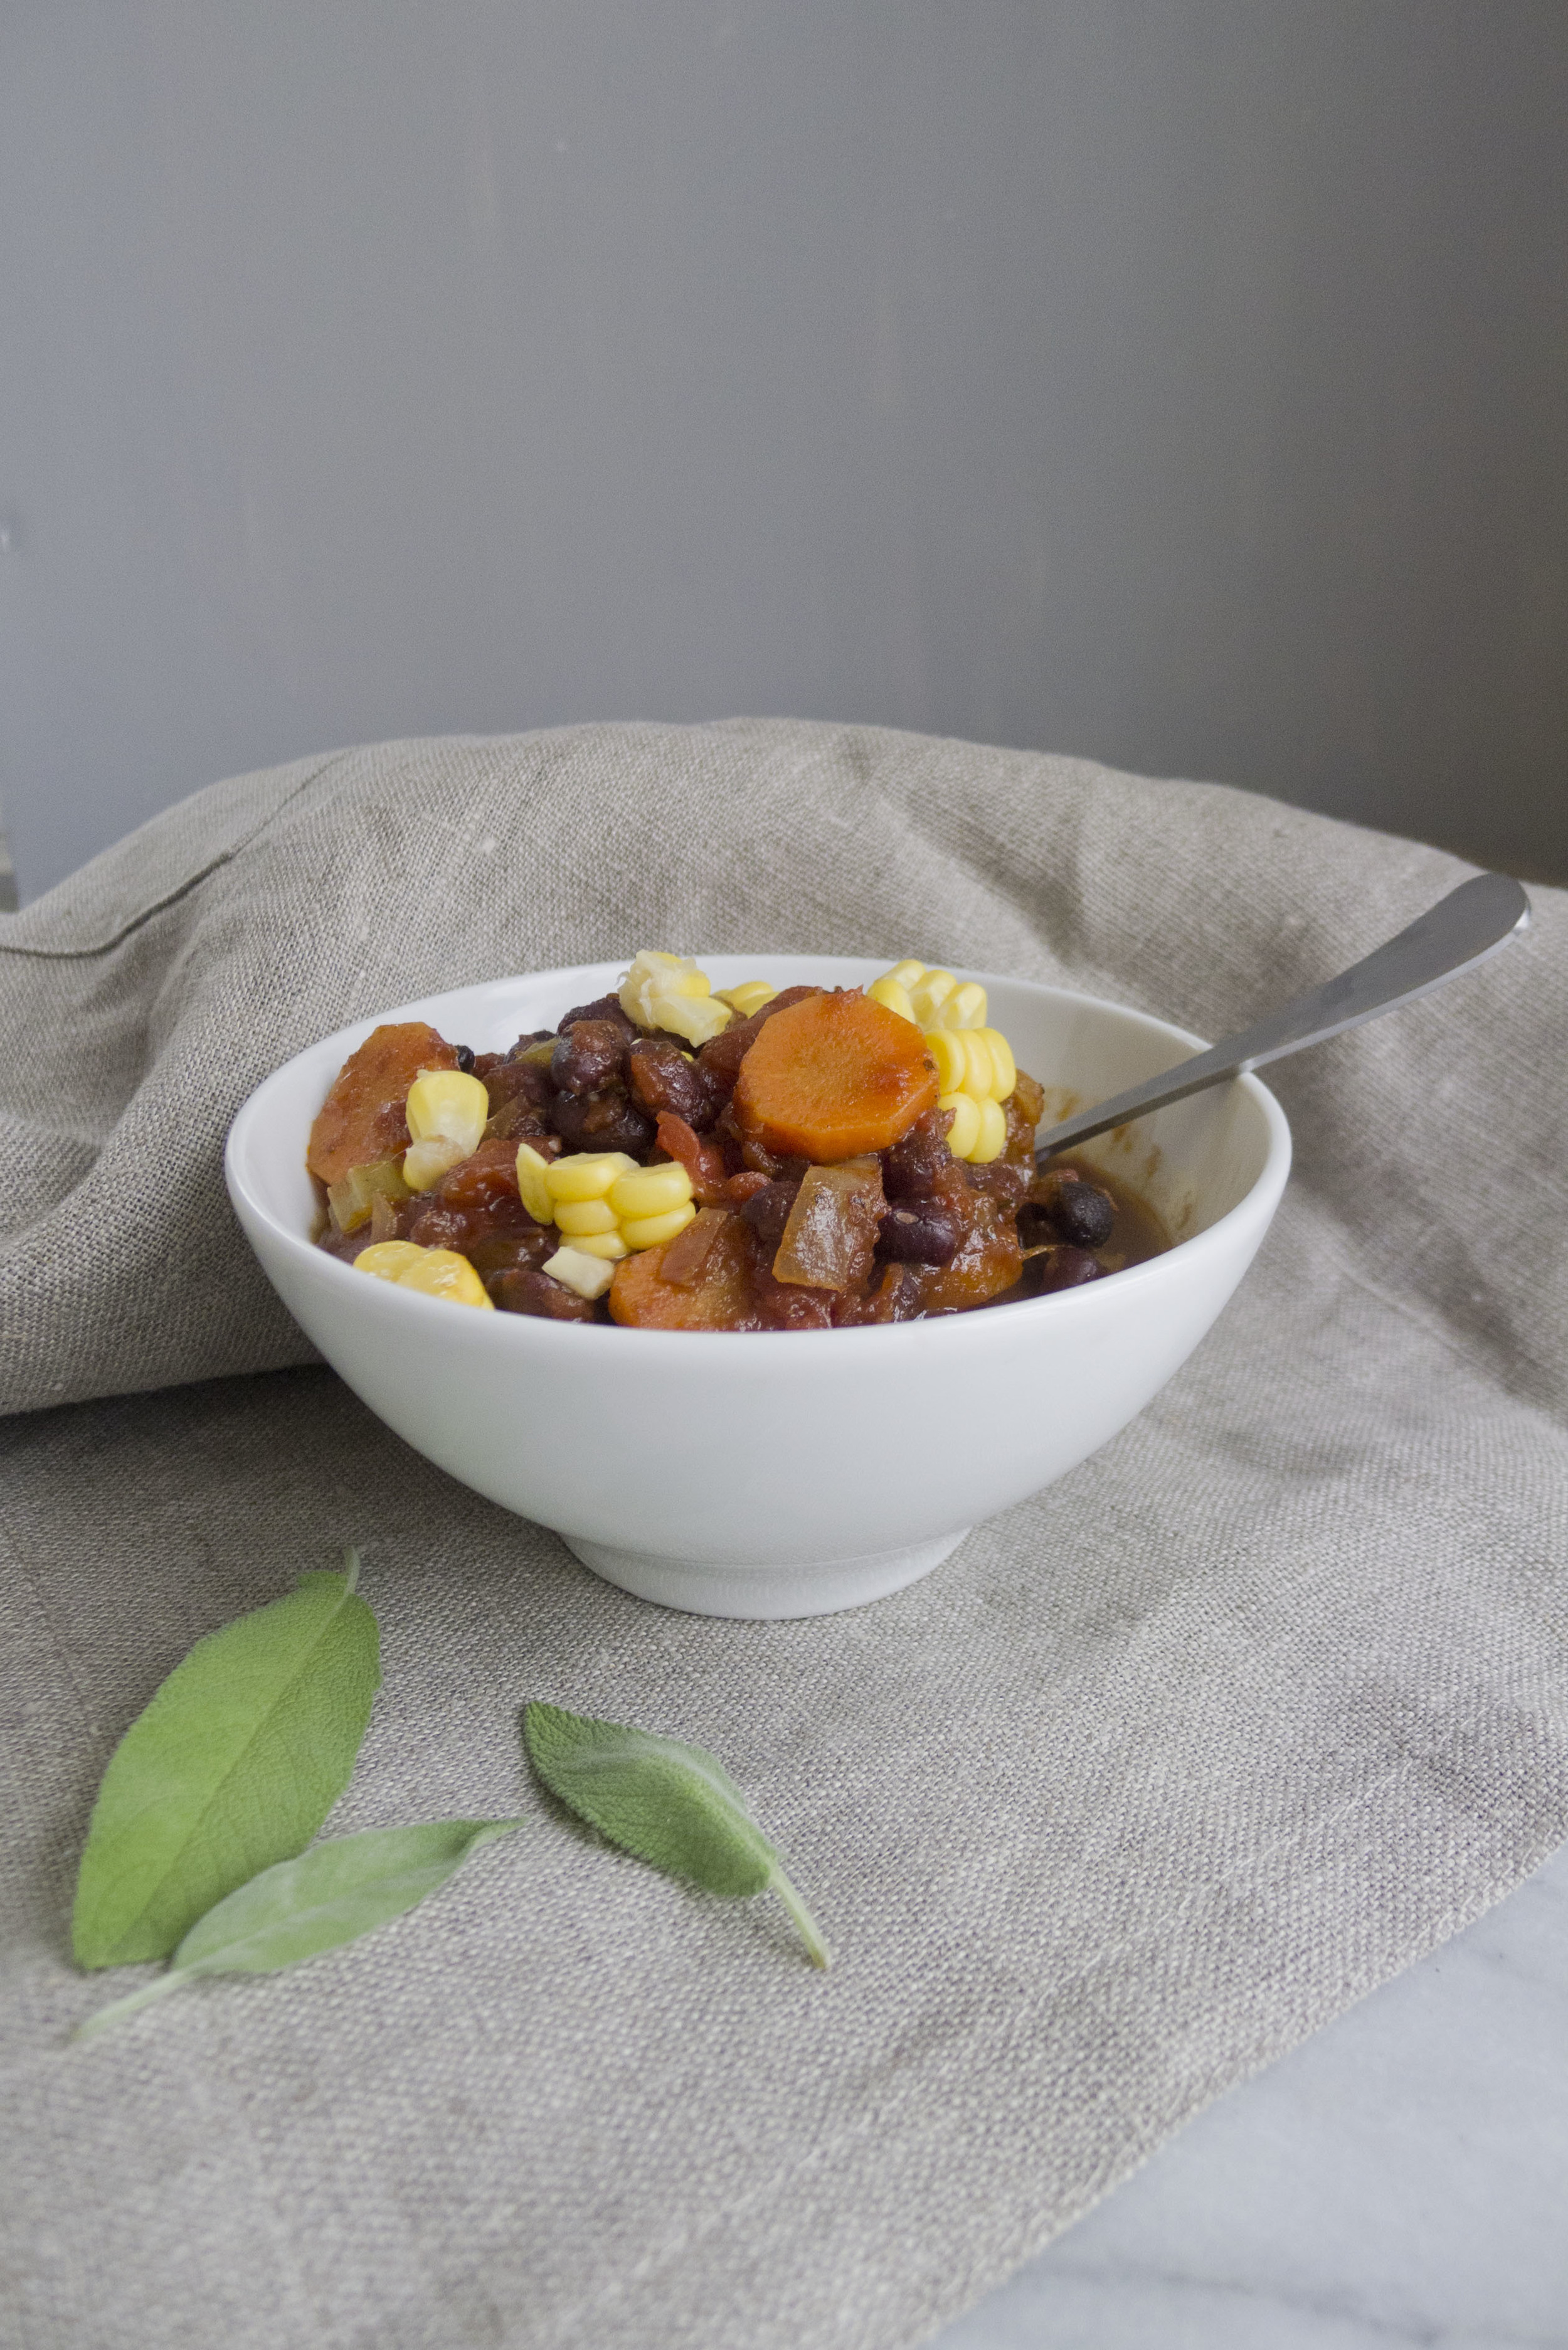 vegan winter black bean chili with fruit based sauce